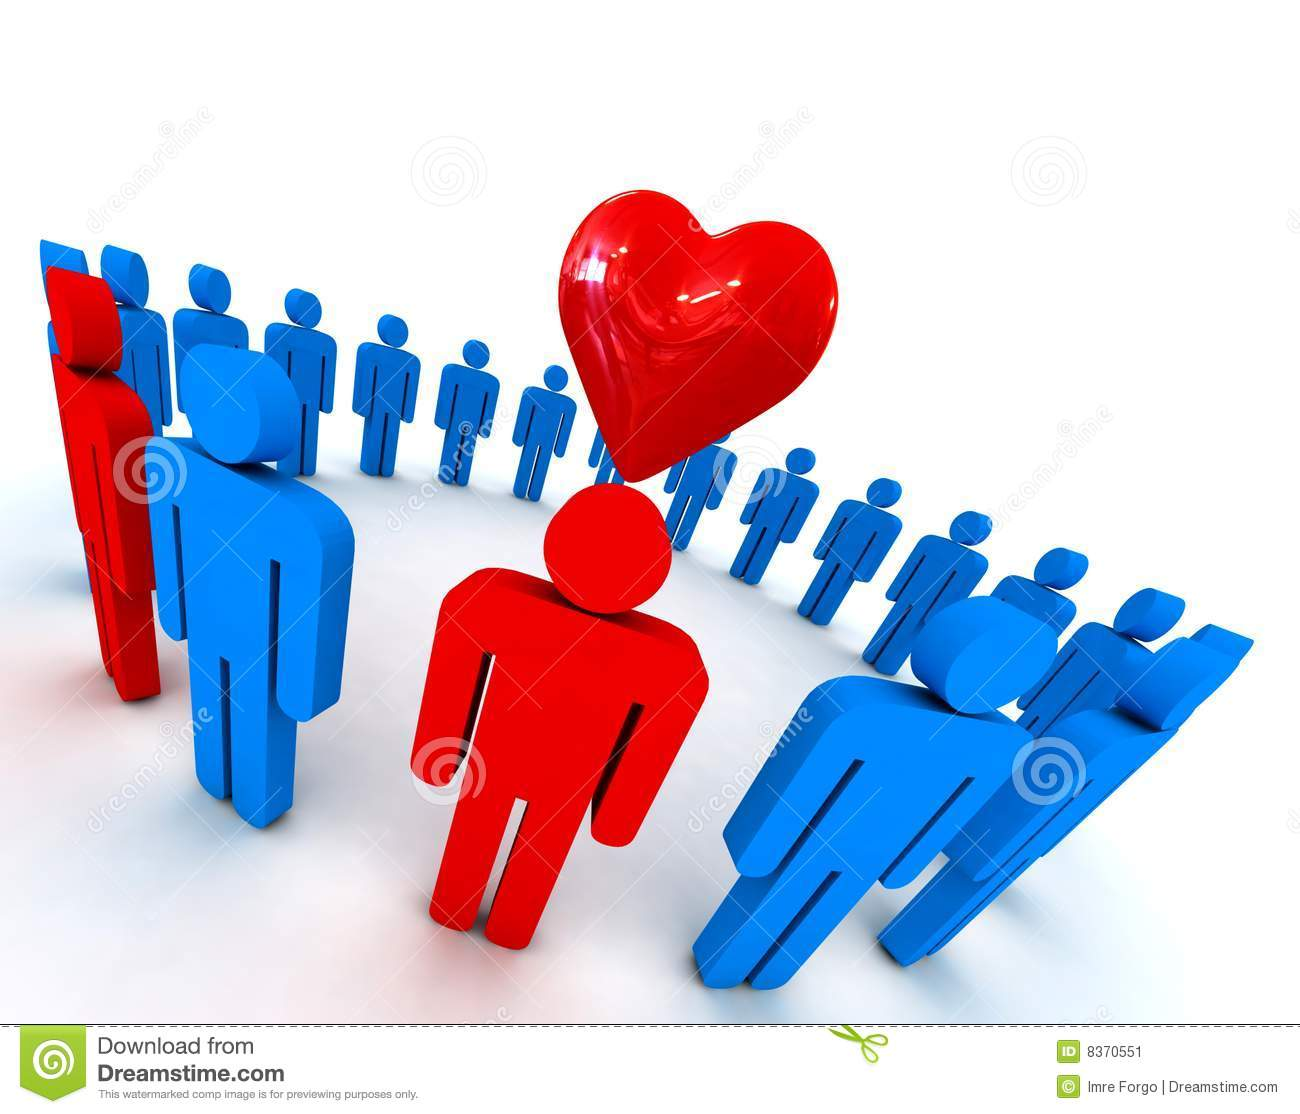 People in circle with heart symbol stock illustration image 8370551 people in circle with heart symbol buycottarizona